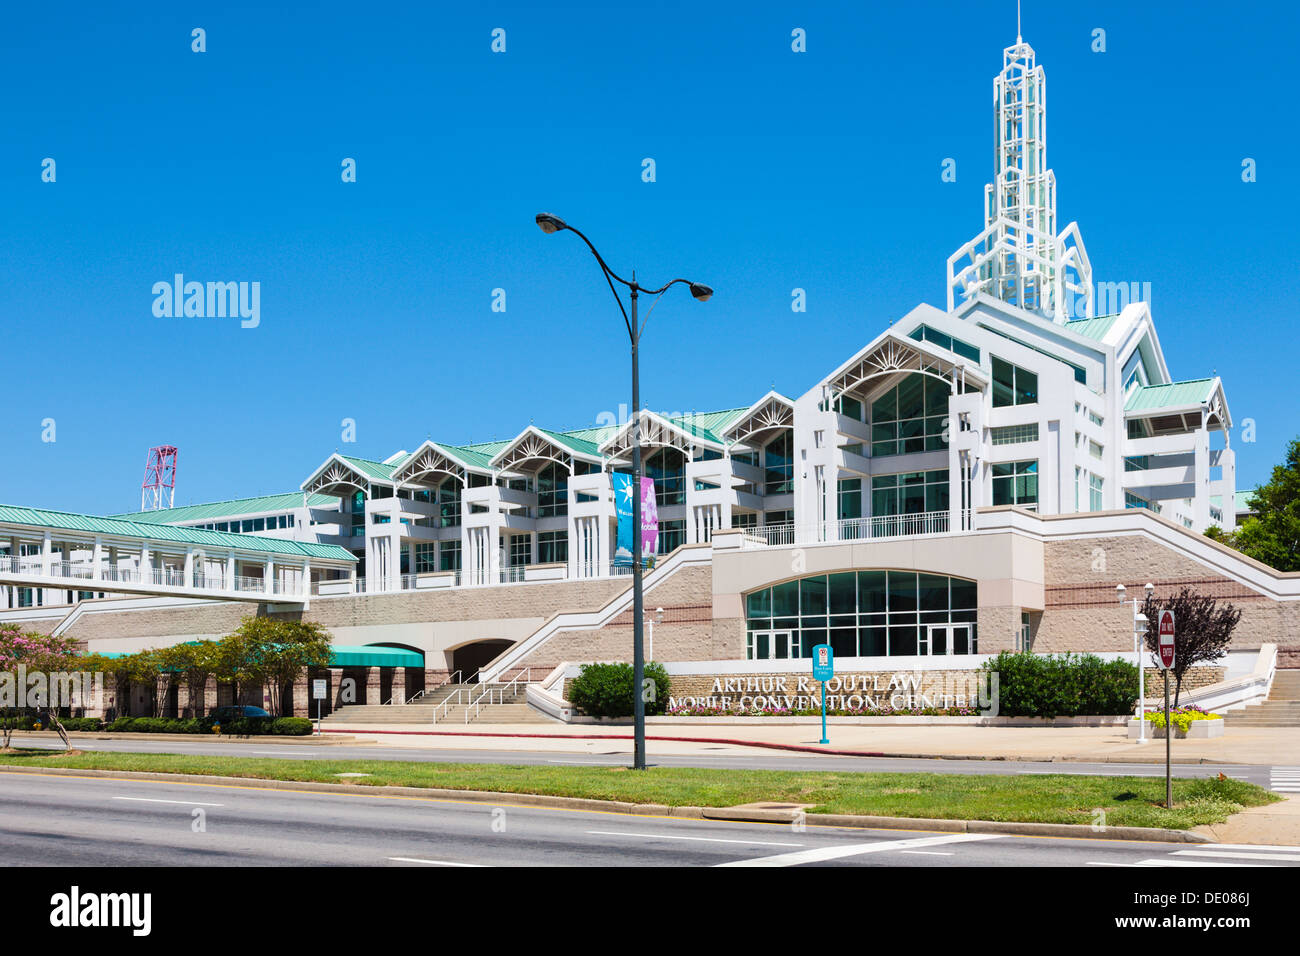 Arthur R. Outlaw Mobile Convention Center in downtown Mobile, Alabama - Stock Image